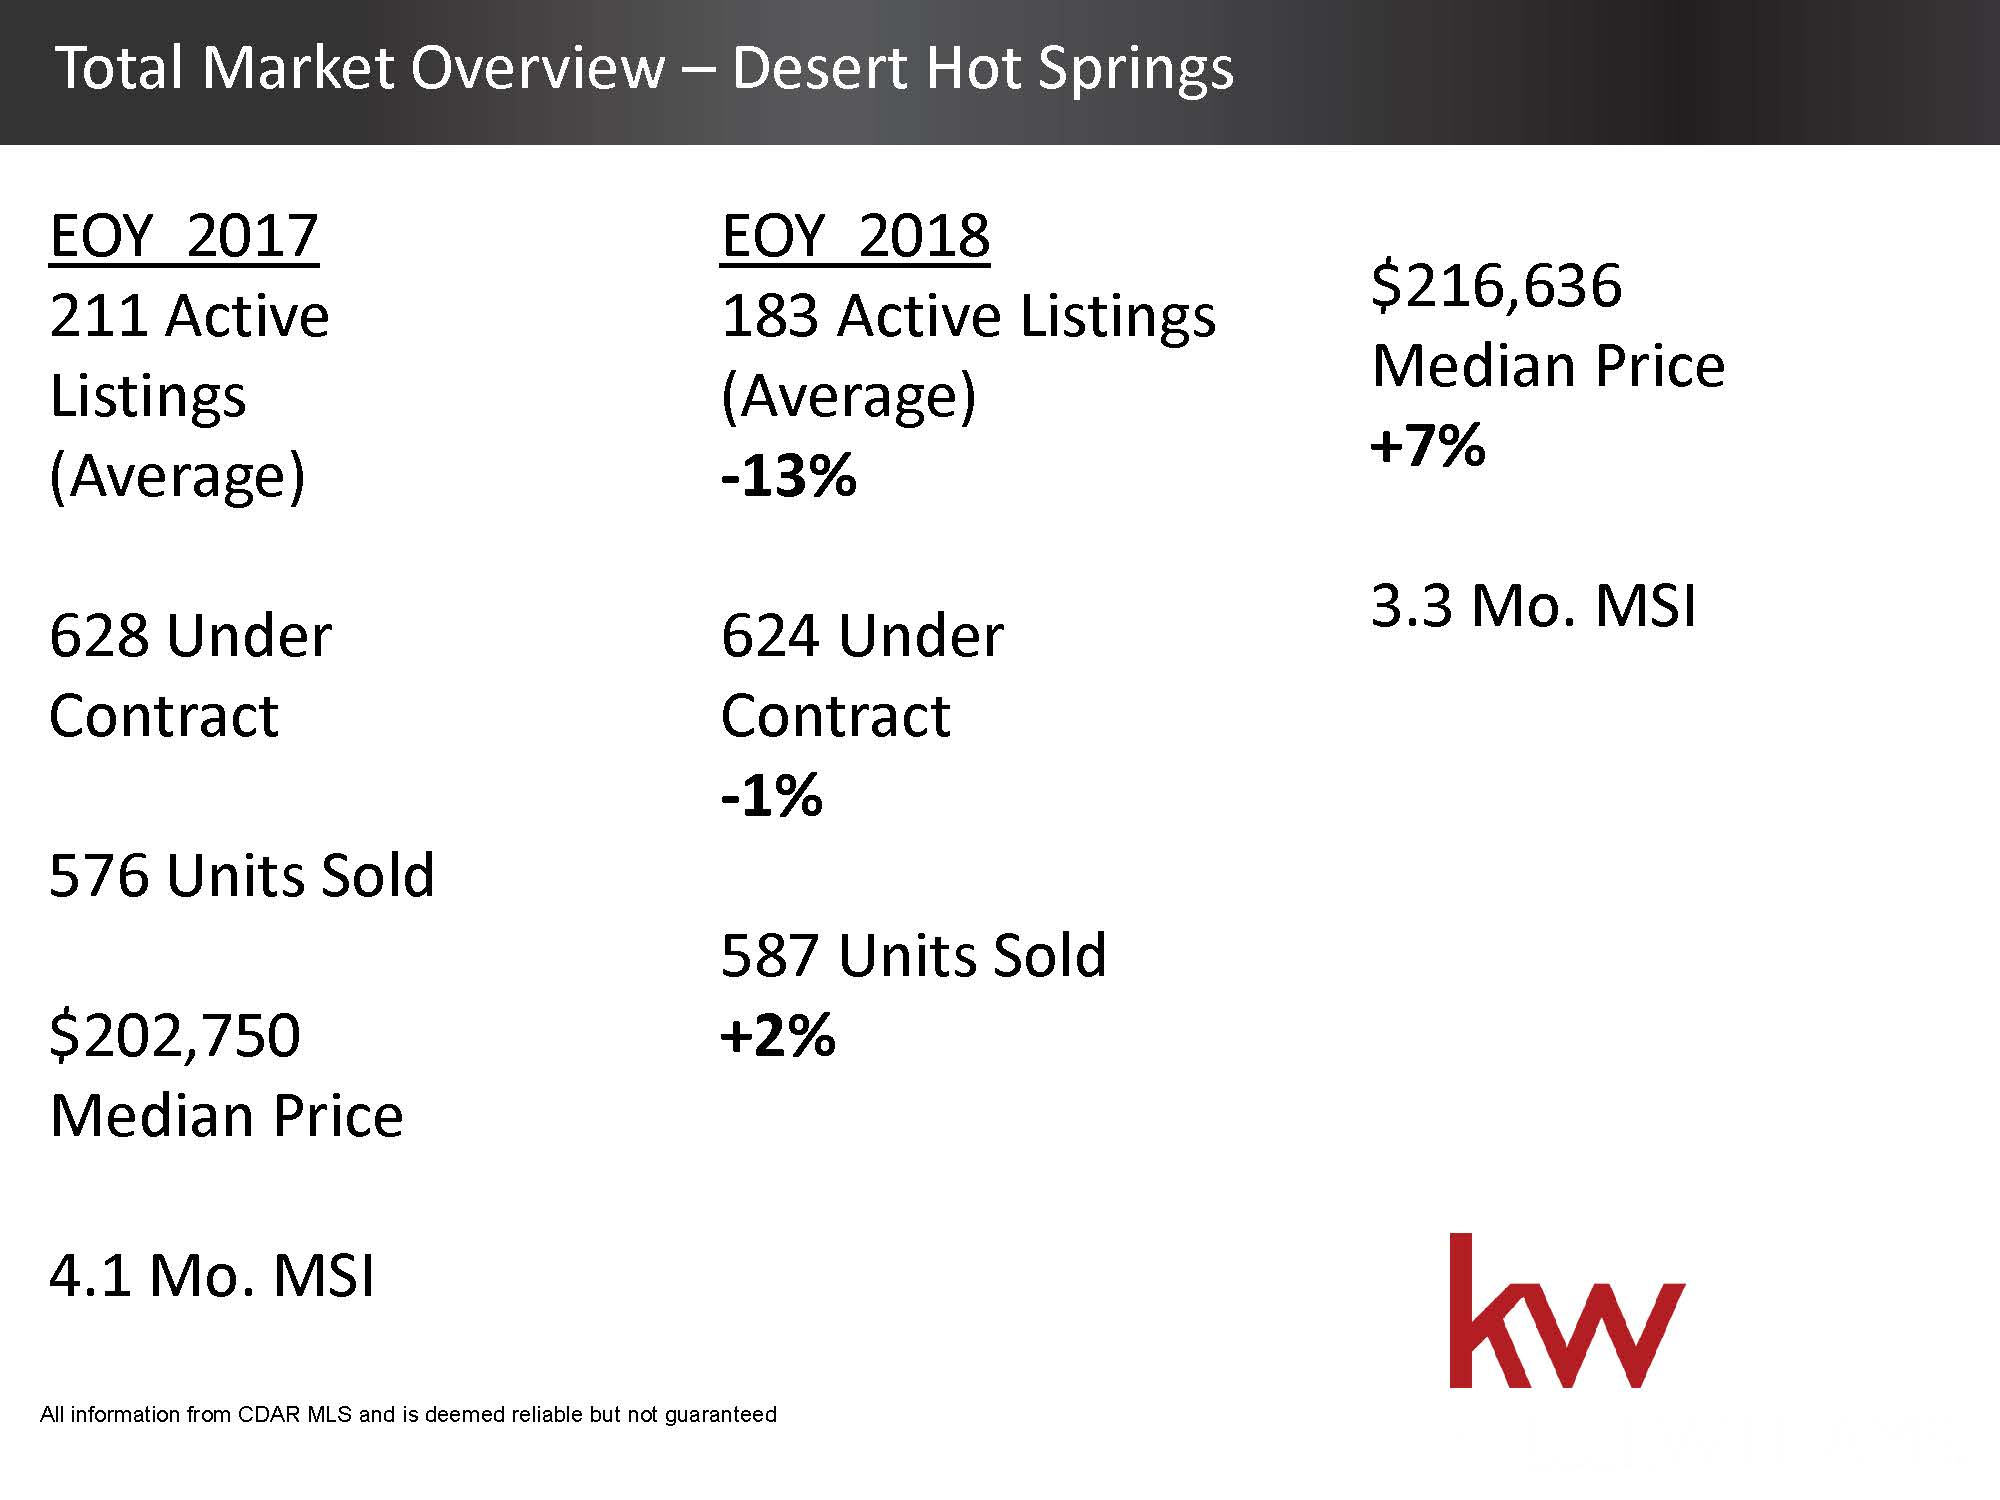 Total Housing Market 2018 Overview - Desert Hot Springs